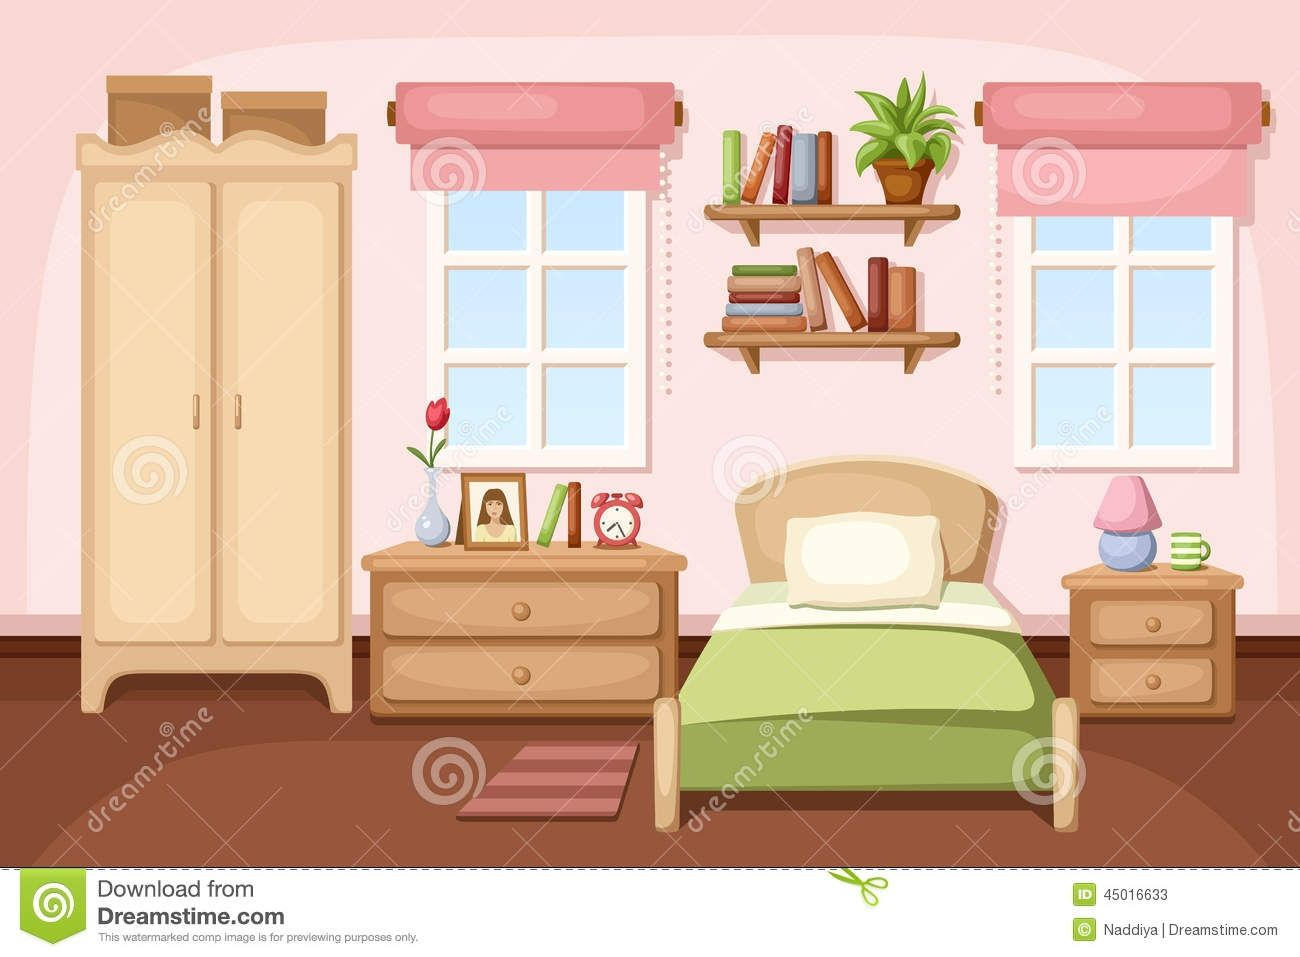 Bedroom clipart. For mia s playhouse